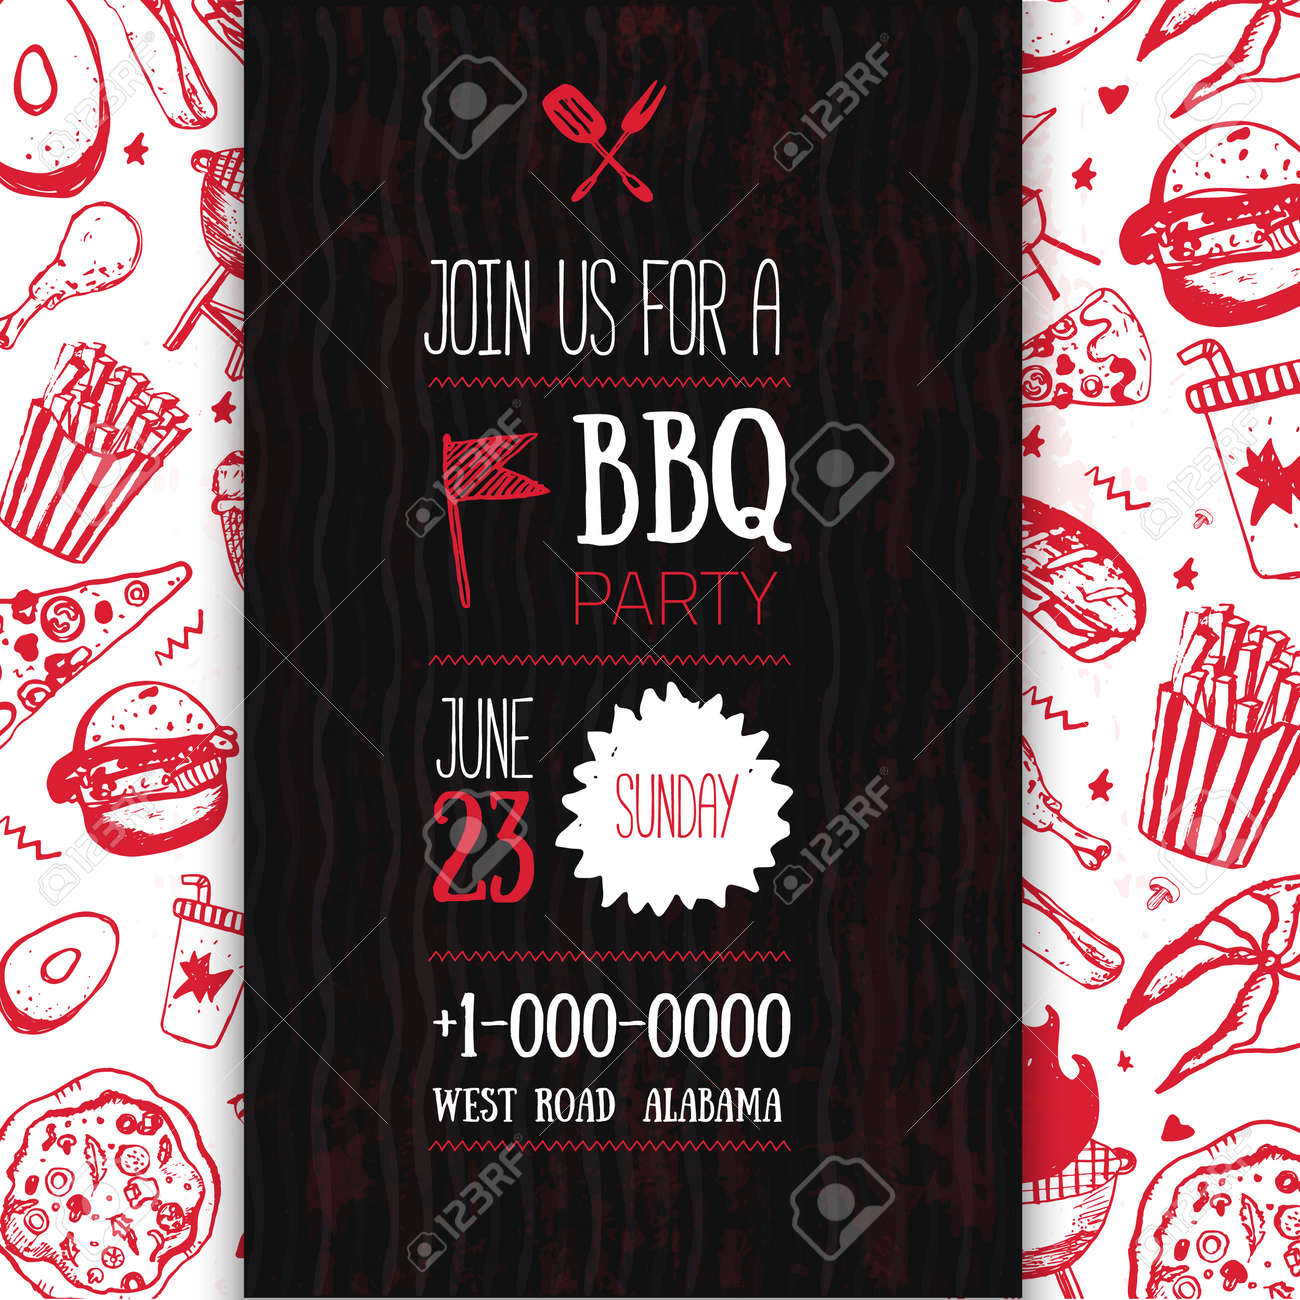 Barbecue Flyer Template For Your Party With Grunge Icons And